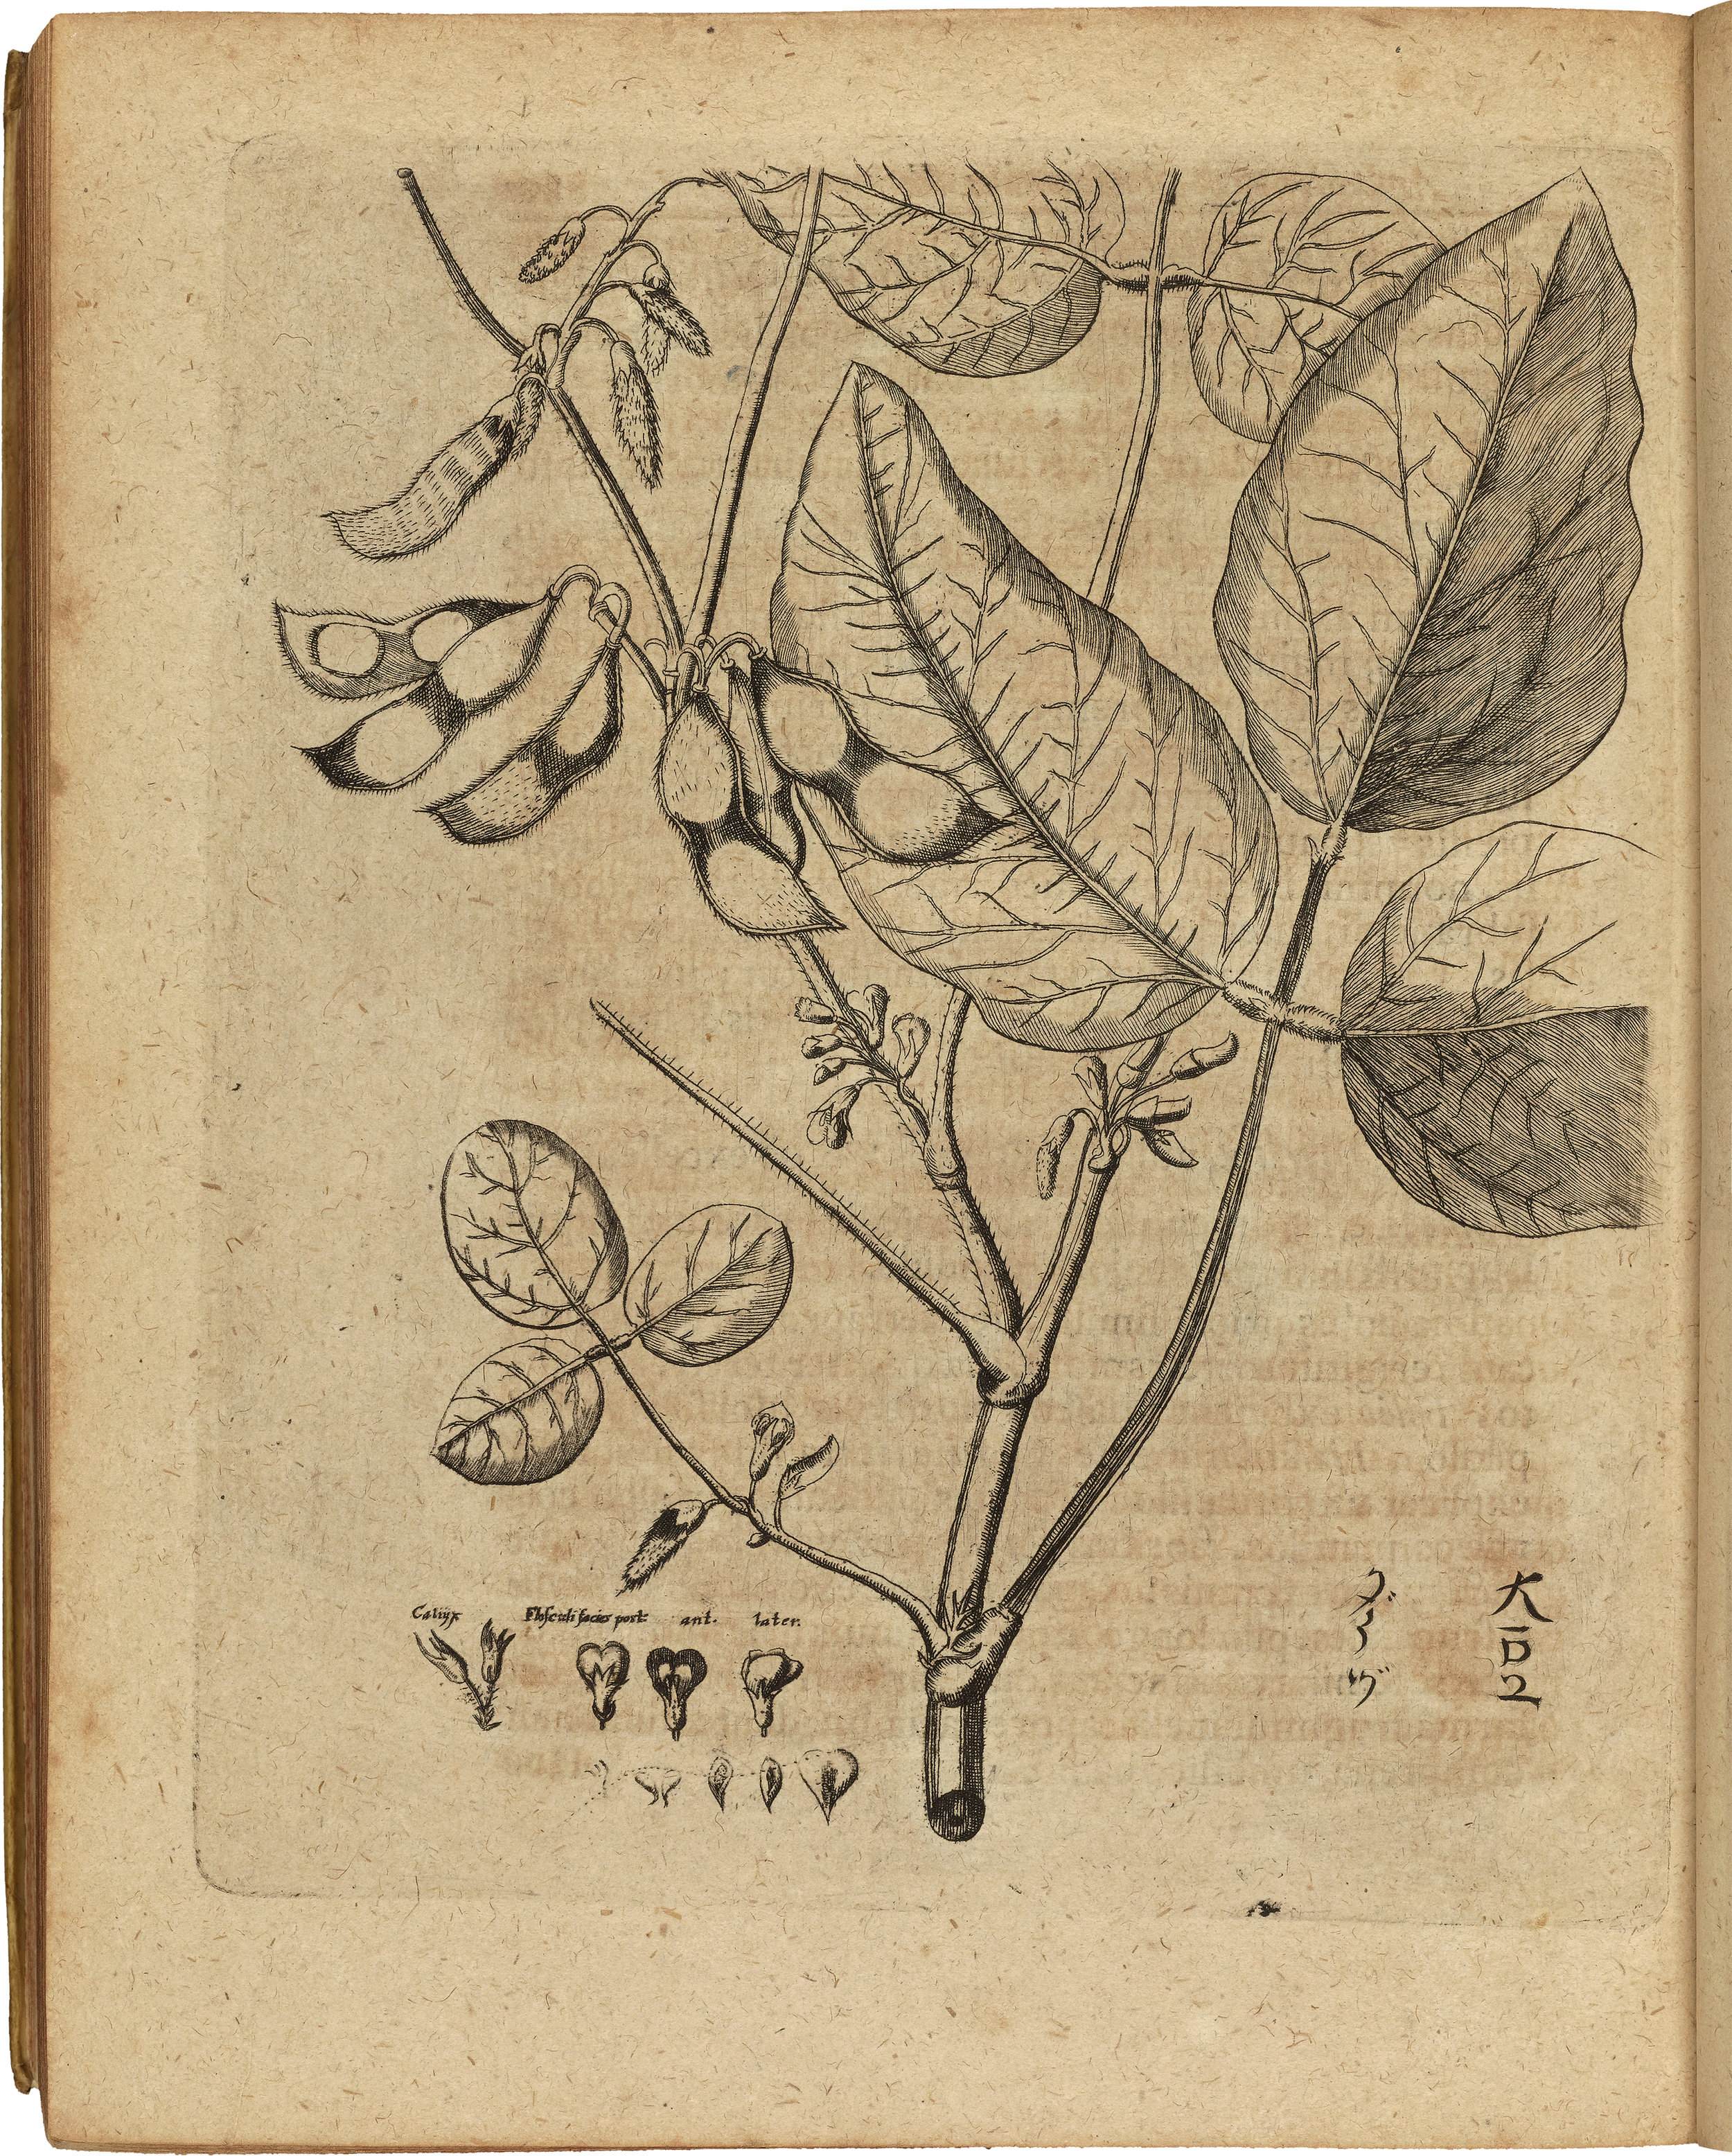 A 1712 illustration of a soybean by Engelbert Kaempfer housed in the Oak Spring Garden Library